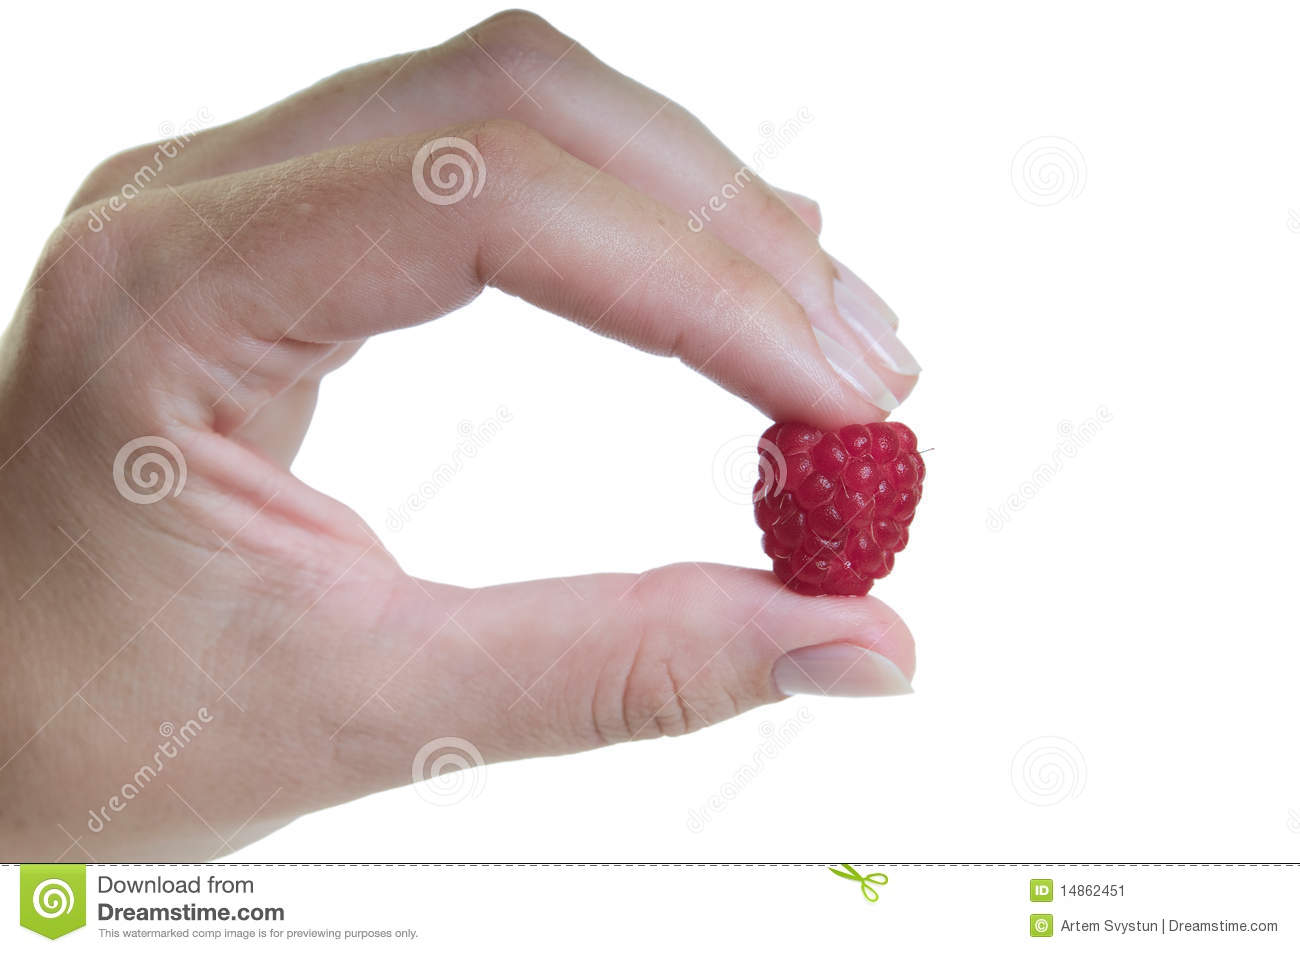 Hand with raspberry